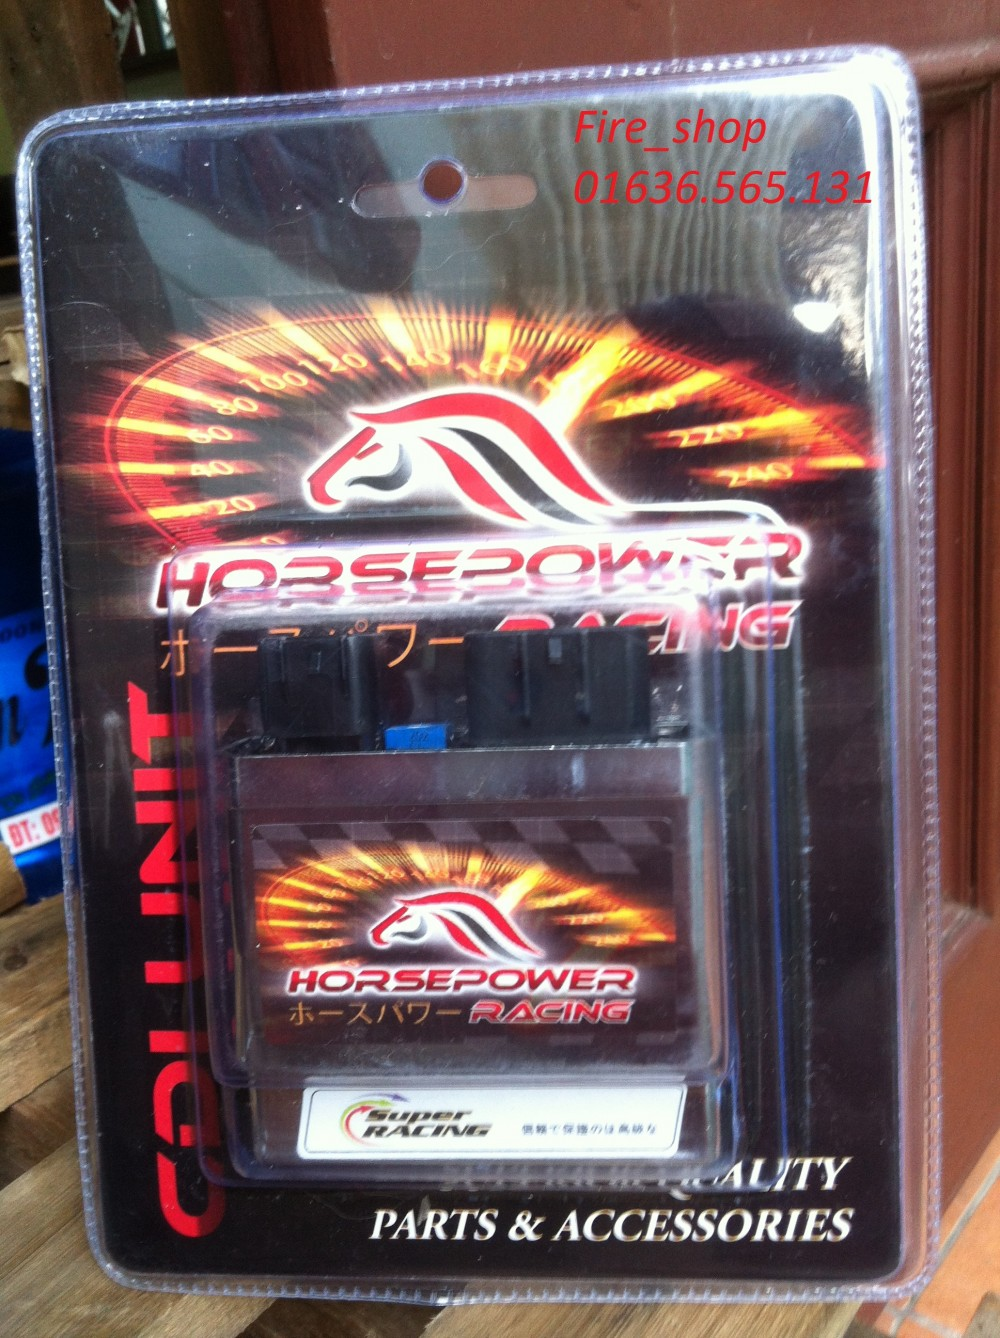 IC banjing horse power racing tim cho Exciter Dream Wave Fire_shop - 3